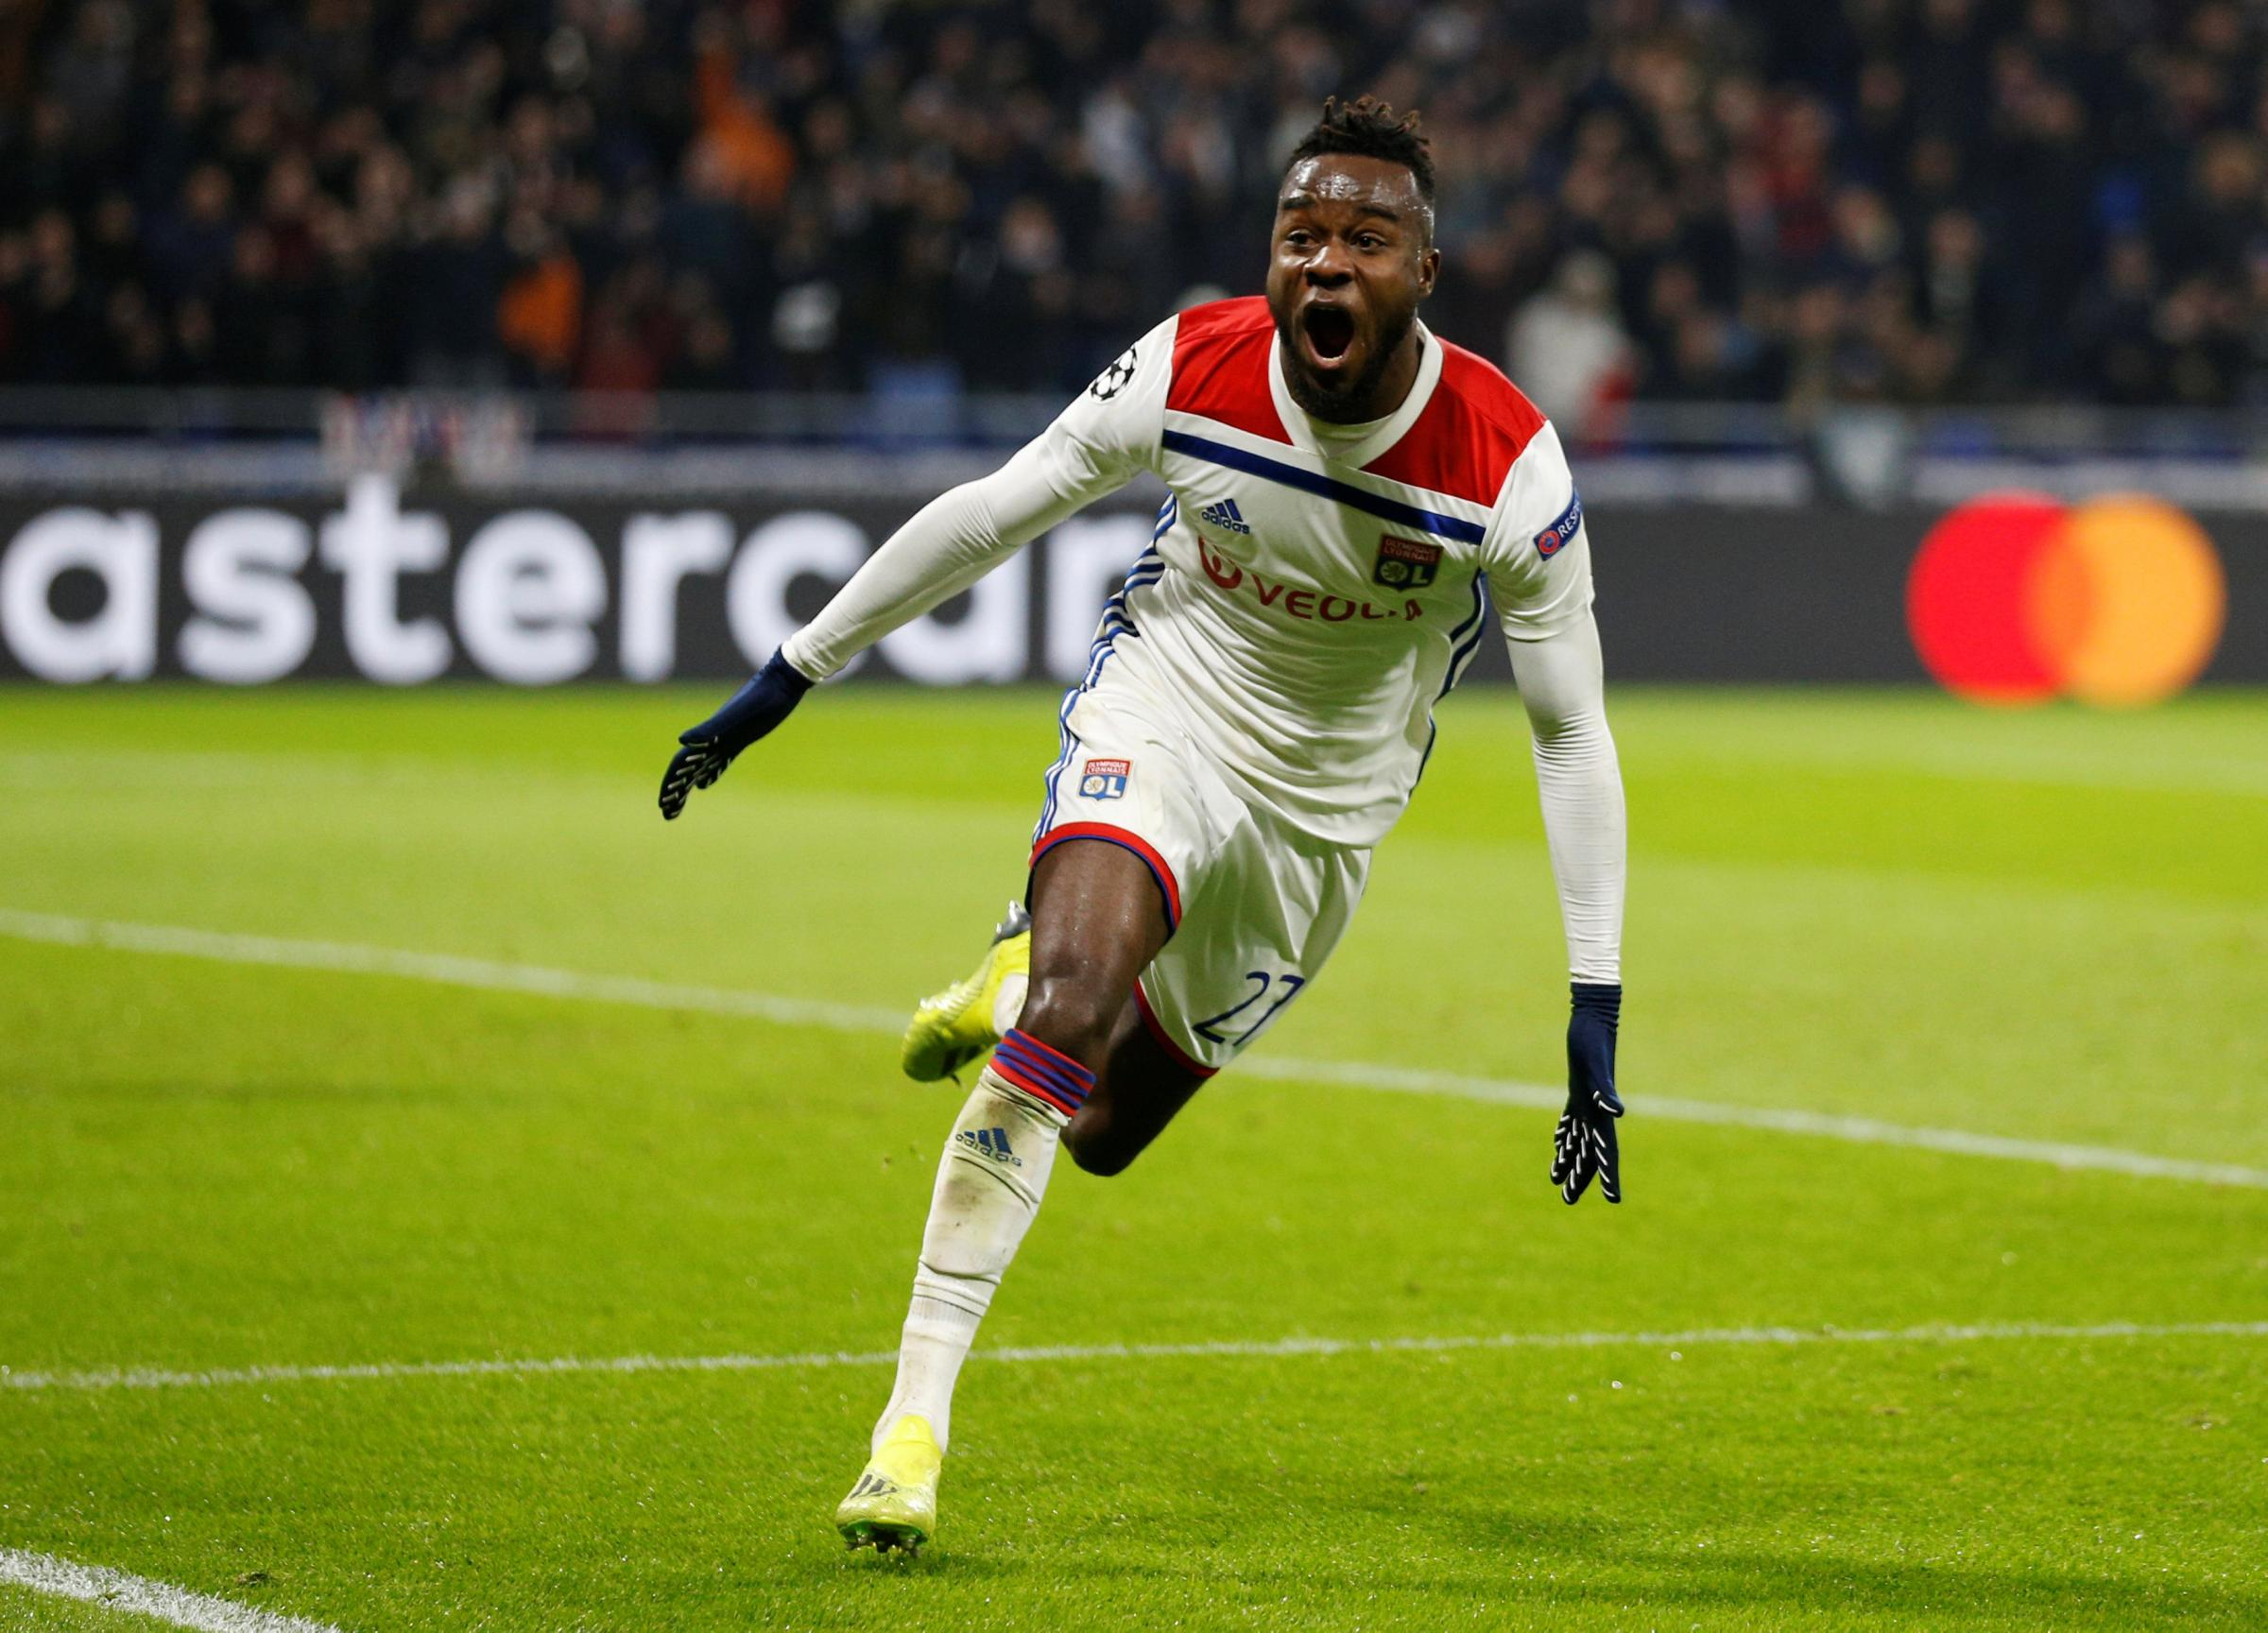 Maxwel Cornet celebrates scoring against Manchester City in the Champions League. Picture: Action Images